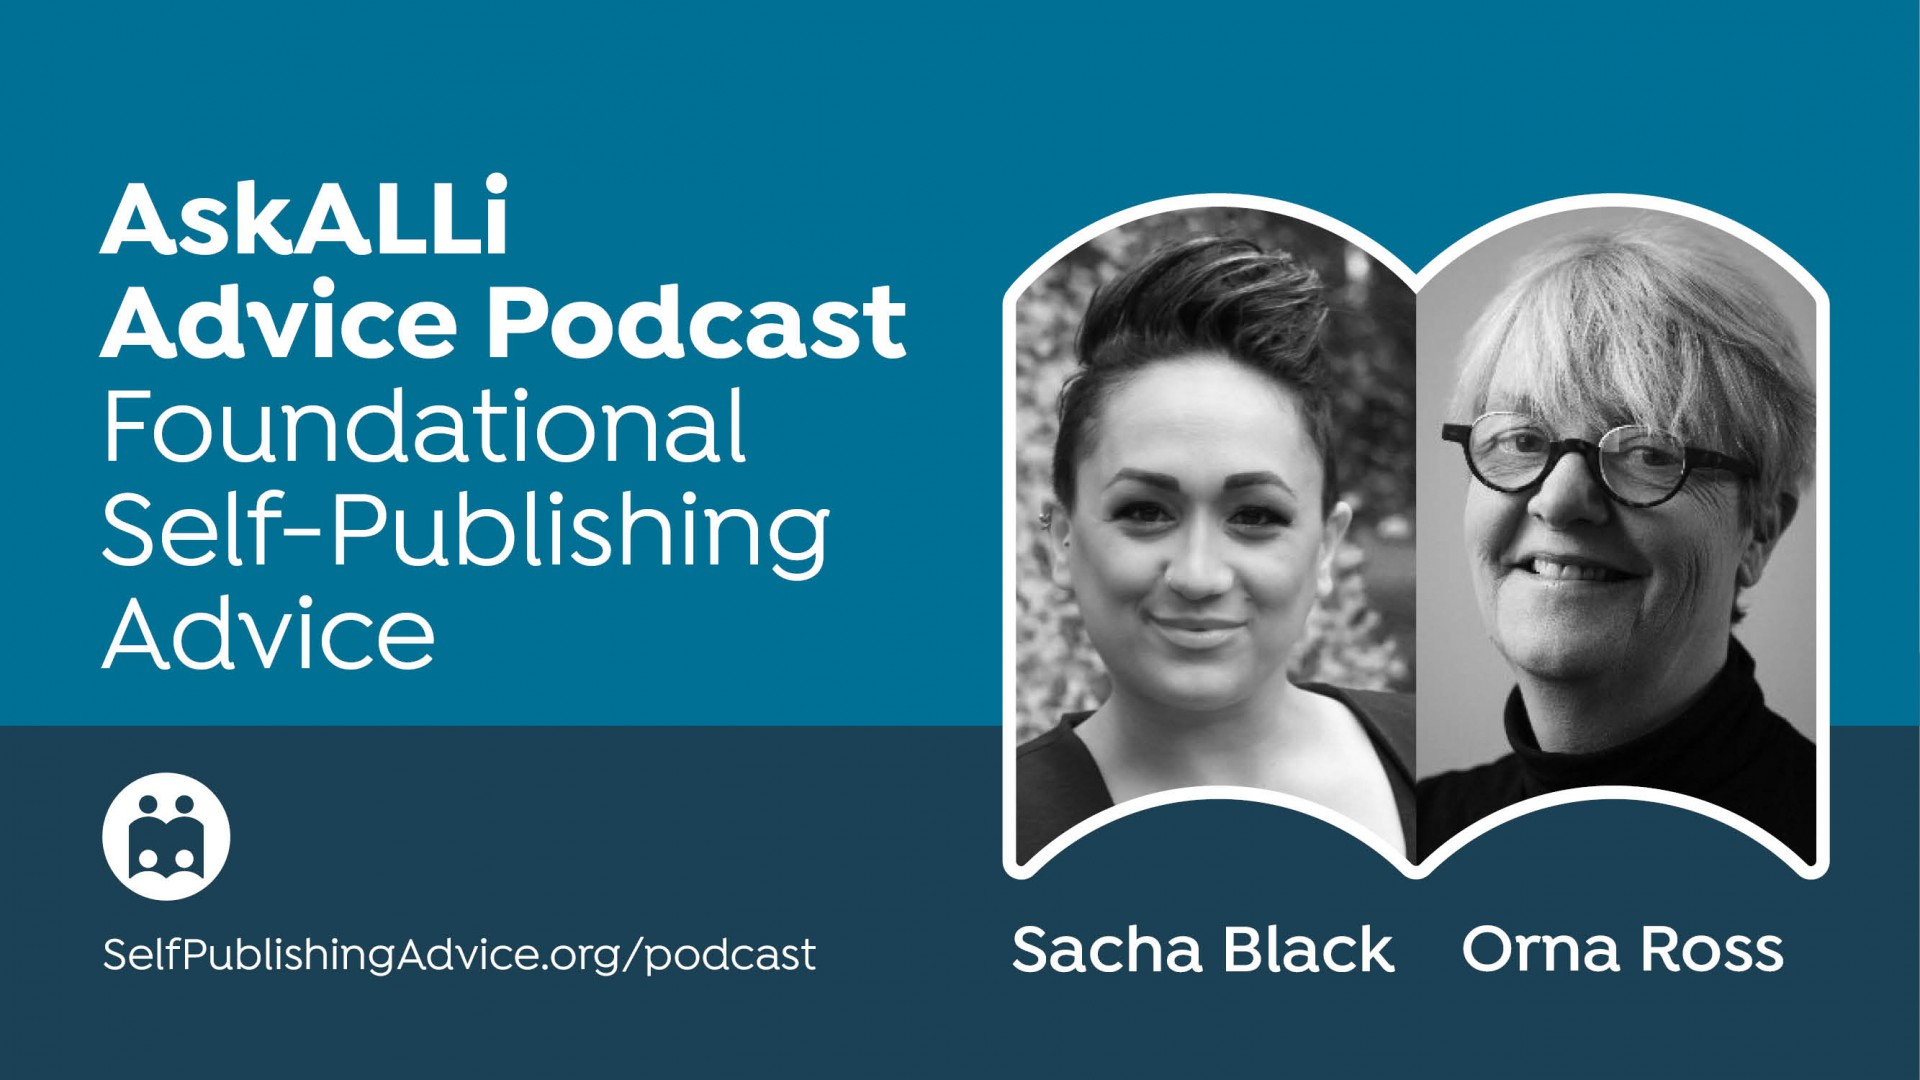 PODCAST: Seven Characteristics Of A Successful Self-Publishing Mindset